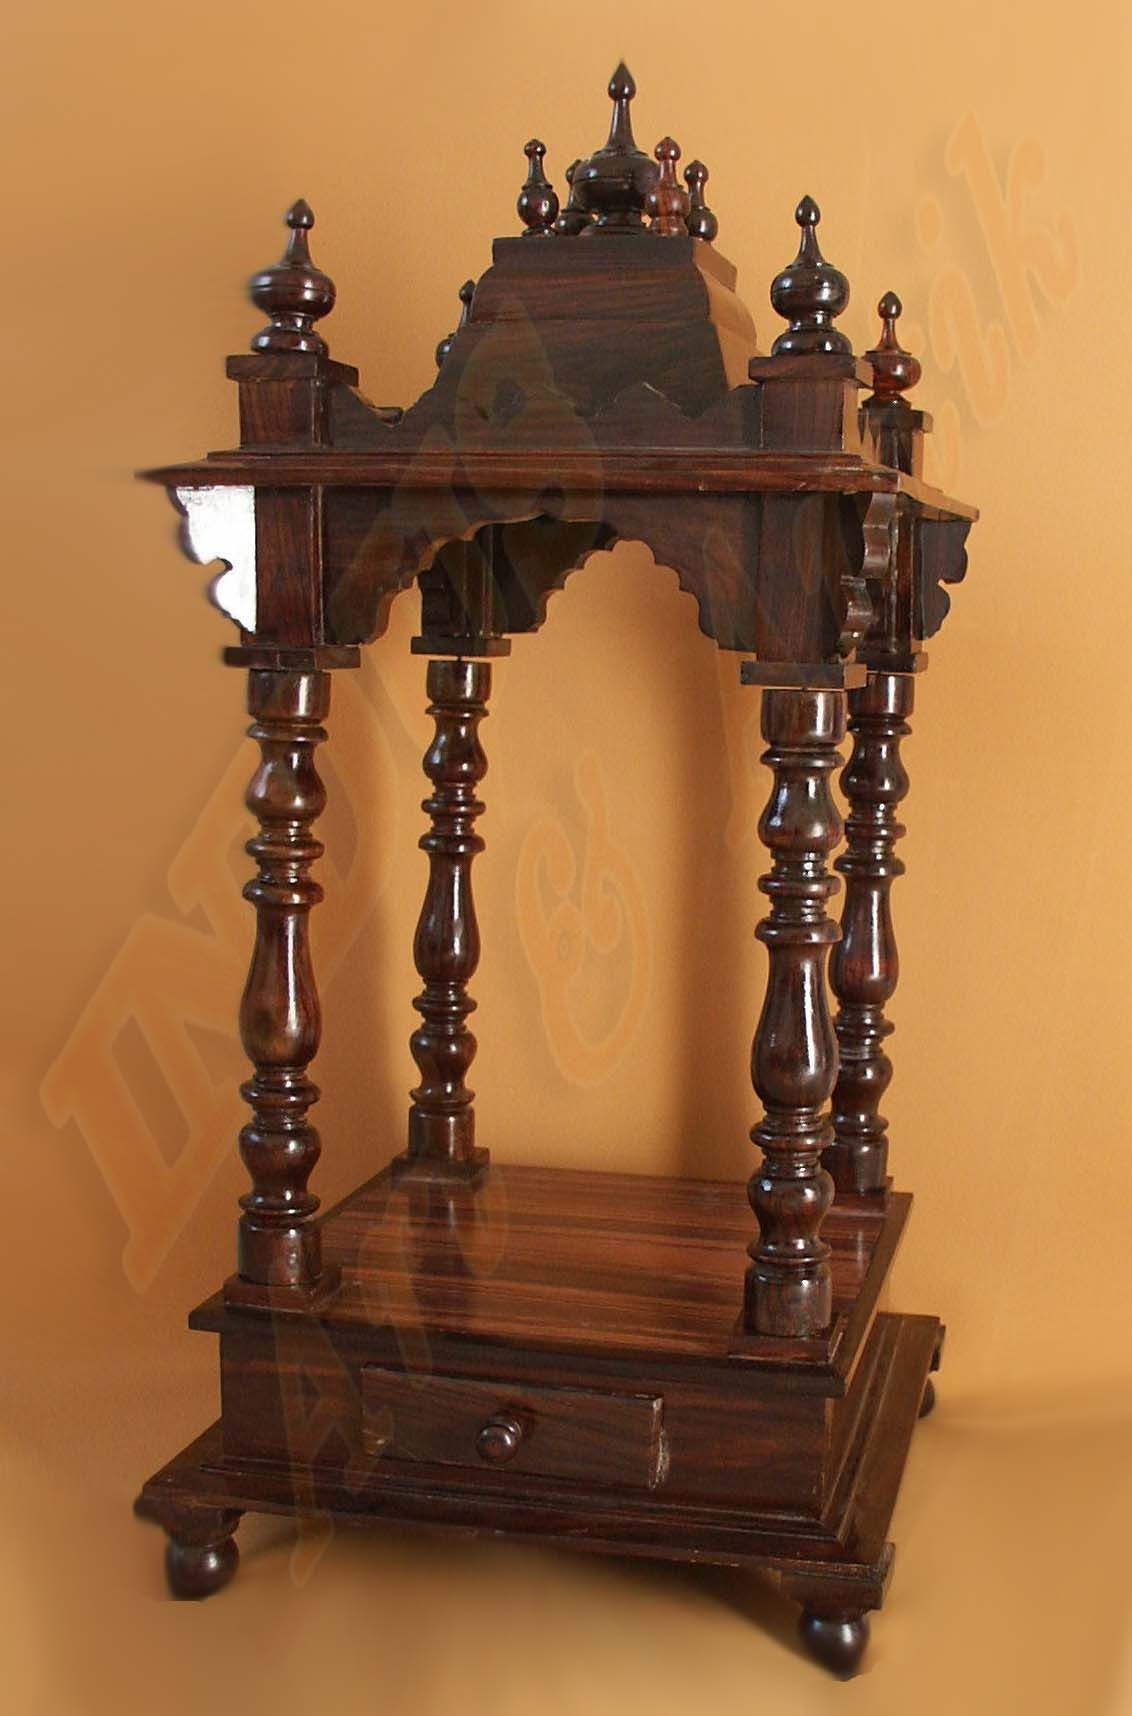 Wooden Temple Designs For Home When You Are Looking For Fantastic  Suggestions On Wood Working,